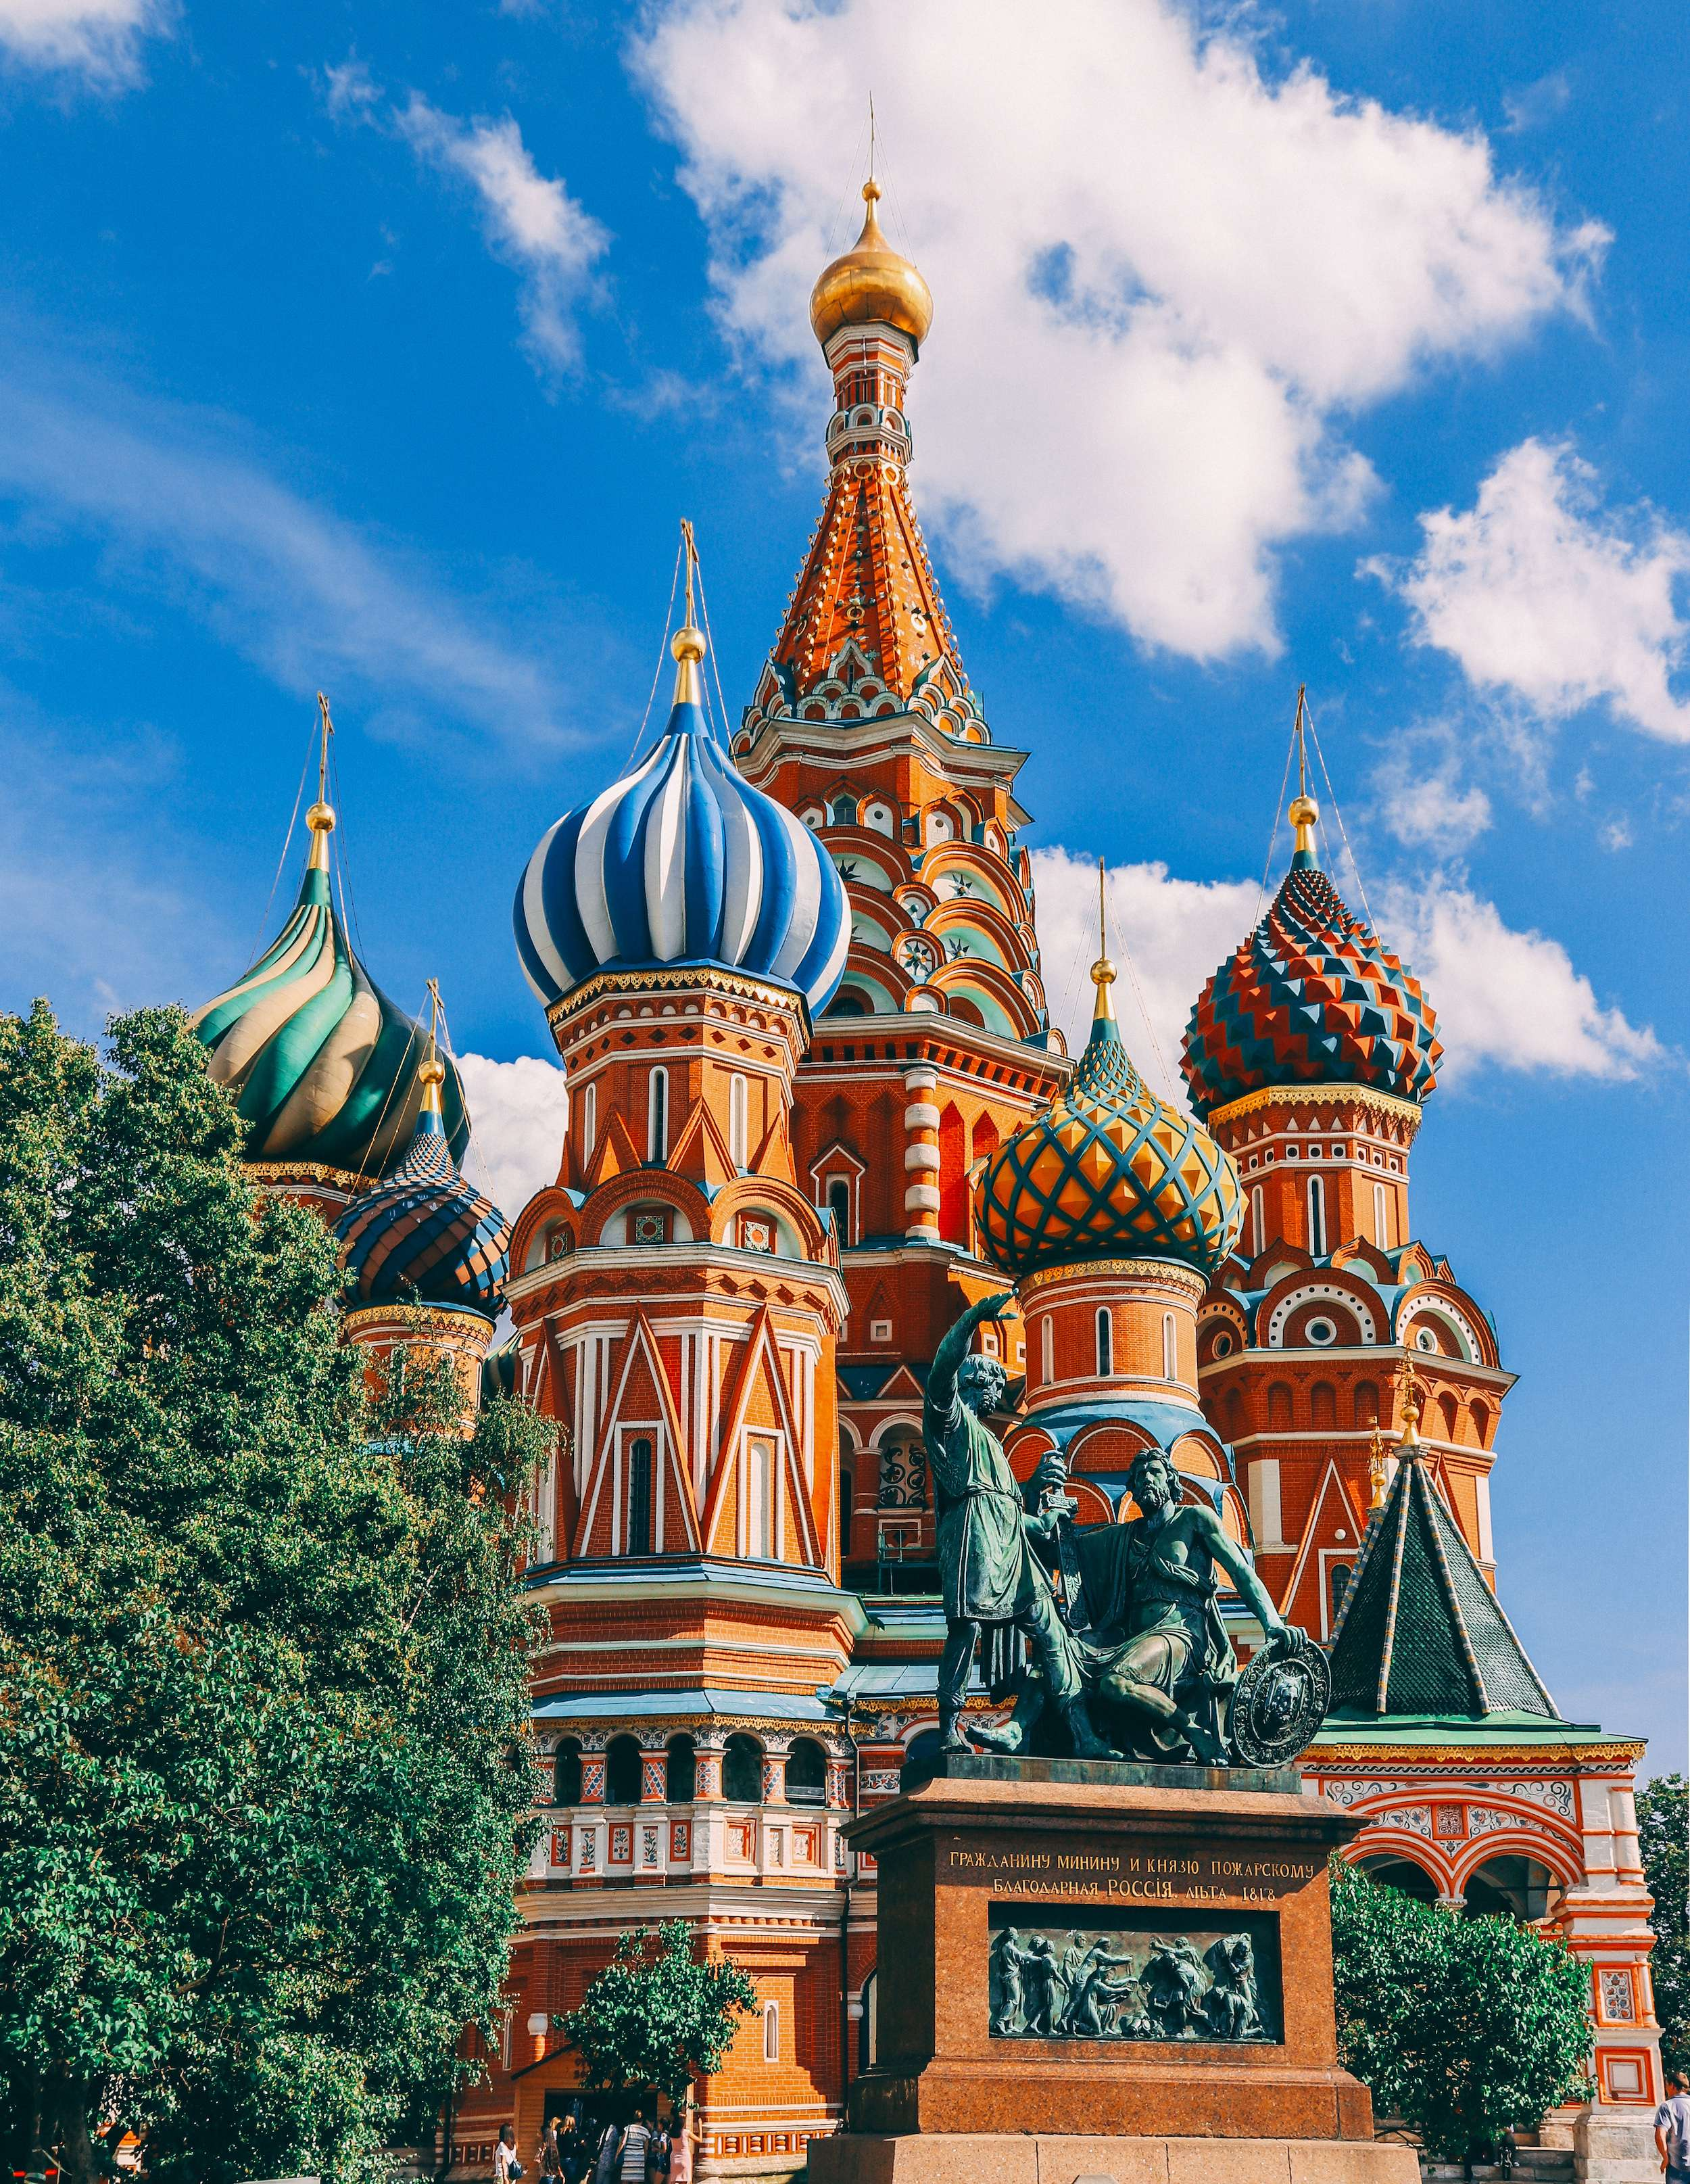 St Basil's Cathedral a holiday destination in Moscow, Russia